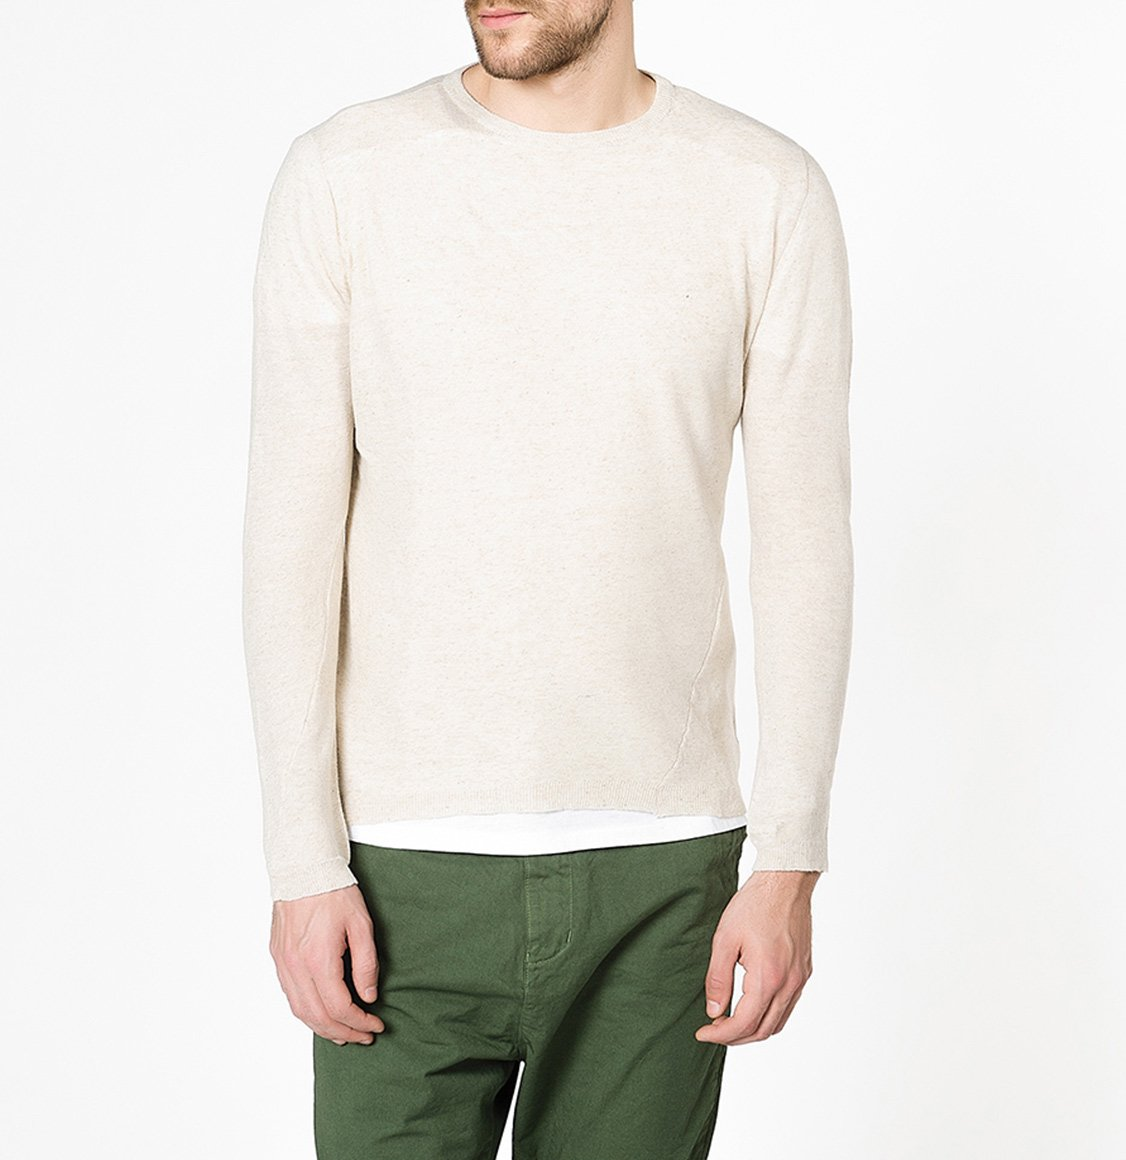 Linen Blend Crew Neck Knitted Sweater Beige